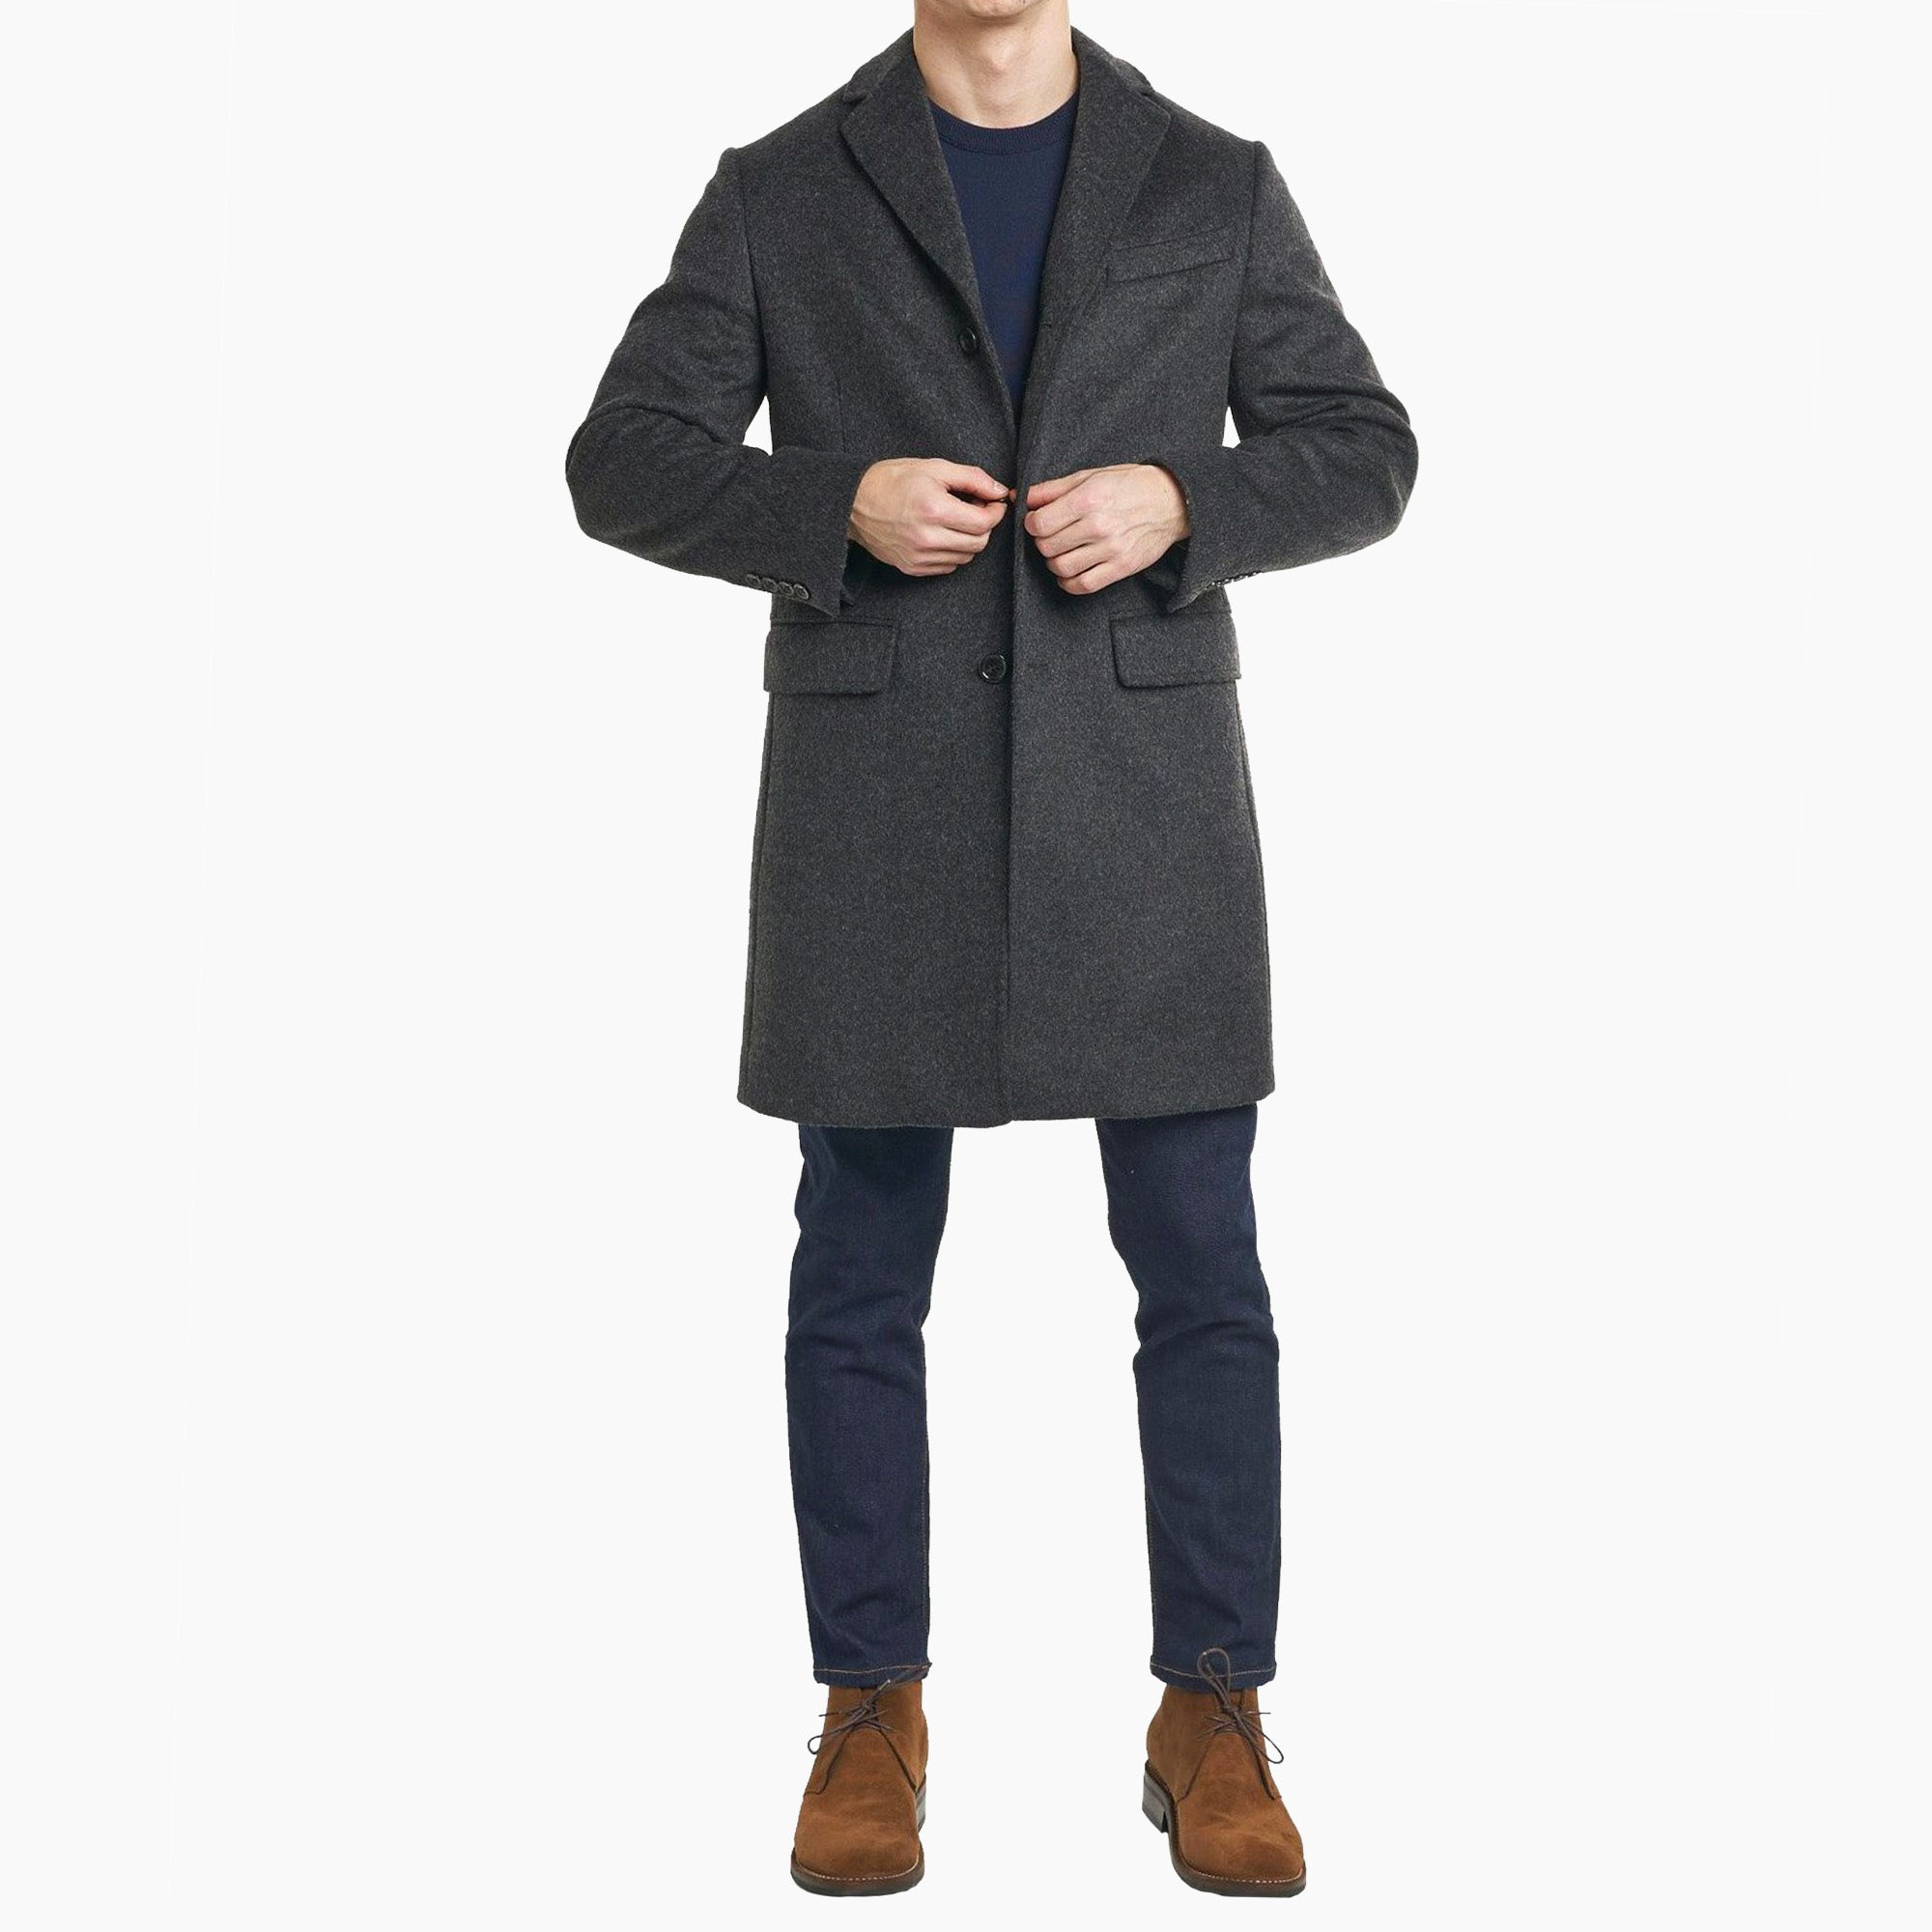 Fulton Wool Cashmere Topcoat - Charcoal